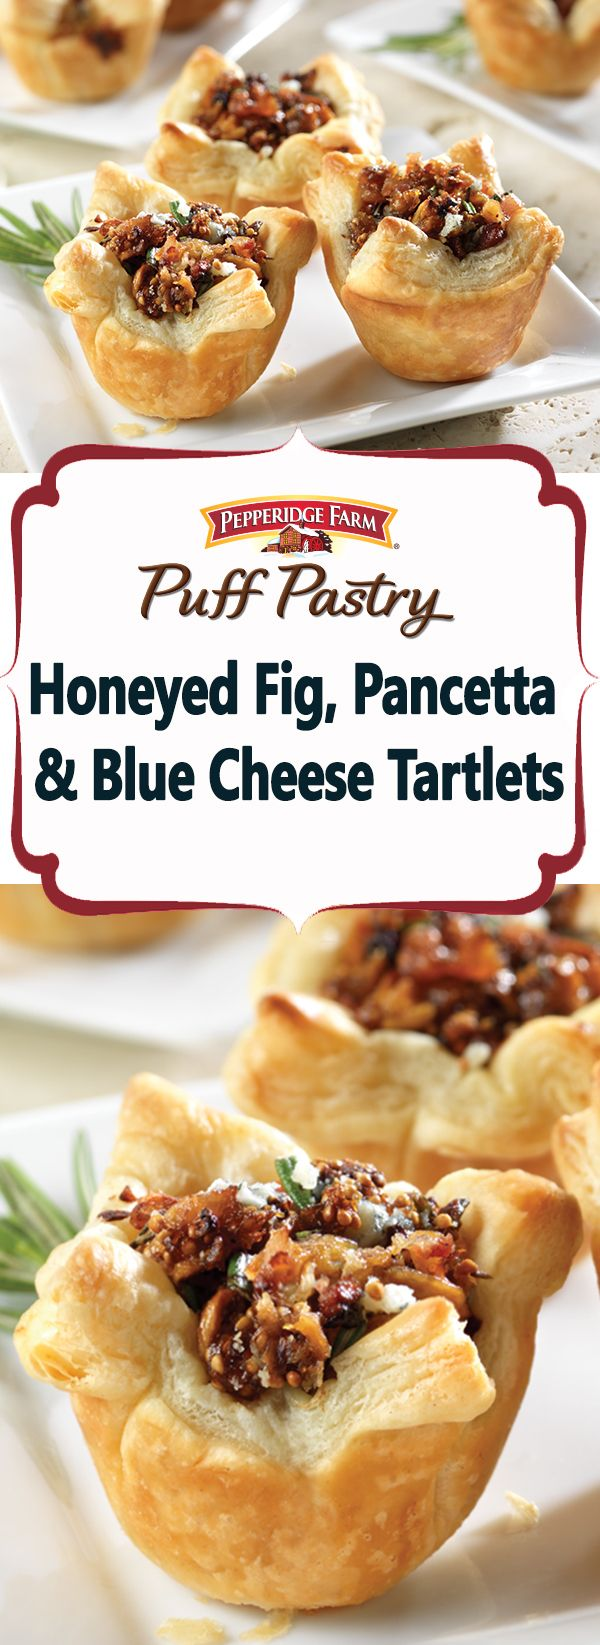 Pepperidge Farm Puff Pastry Honeyed Fig, Pancetta & Blue Cheese Tartlets Recipe. Sweet honeyed figs, salty bacon and savory blue cheese combine to make a delectable filling for mini puff pastry tarts.  These appetizers satisfy all of your cravings.